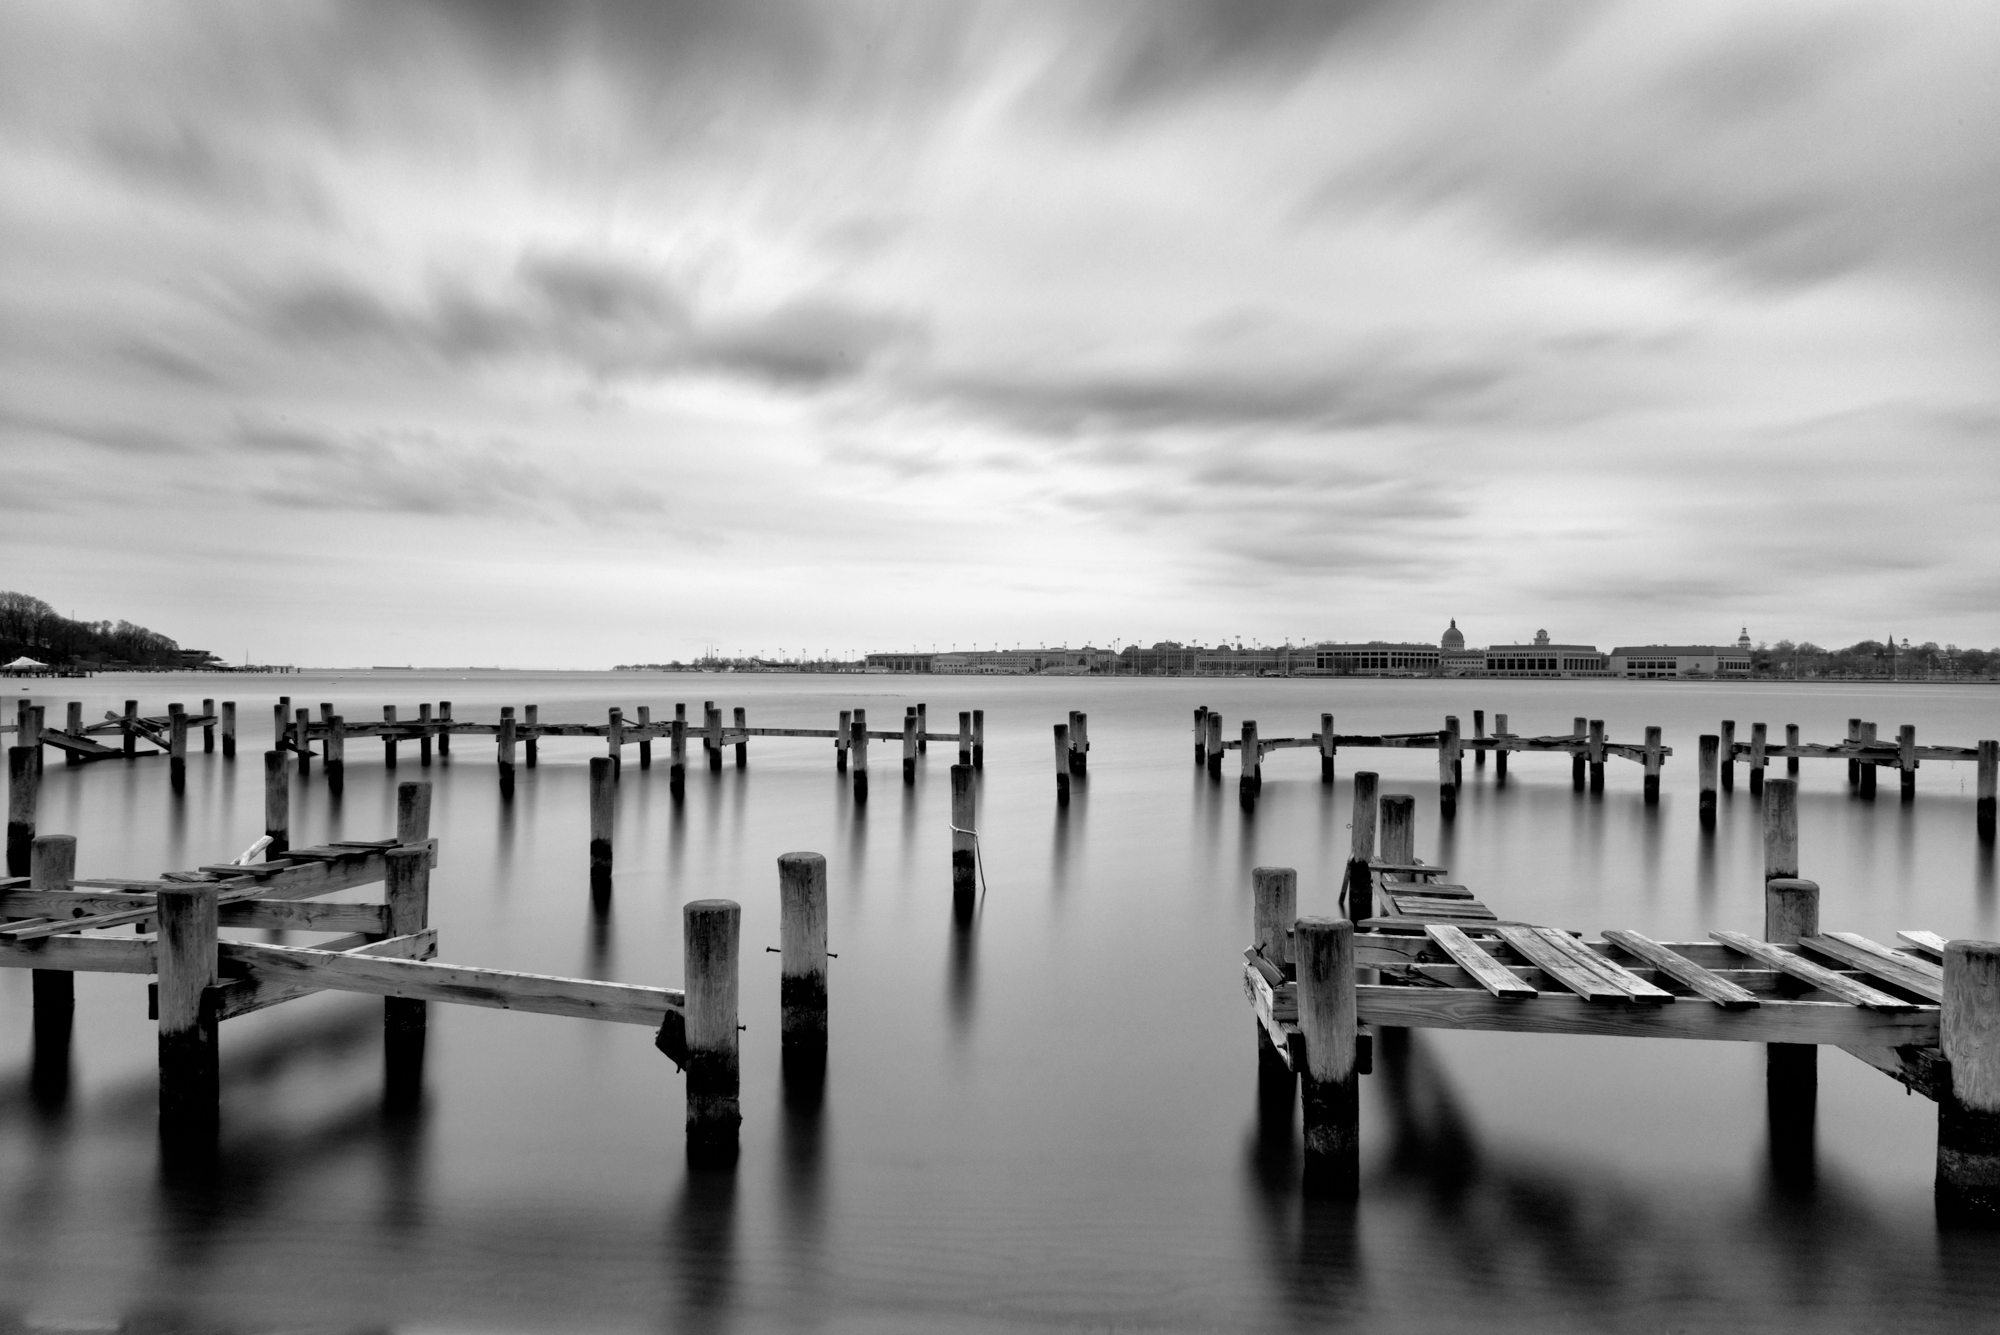 Severn River, March Morning, American Landscapes 2013